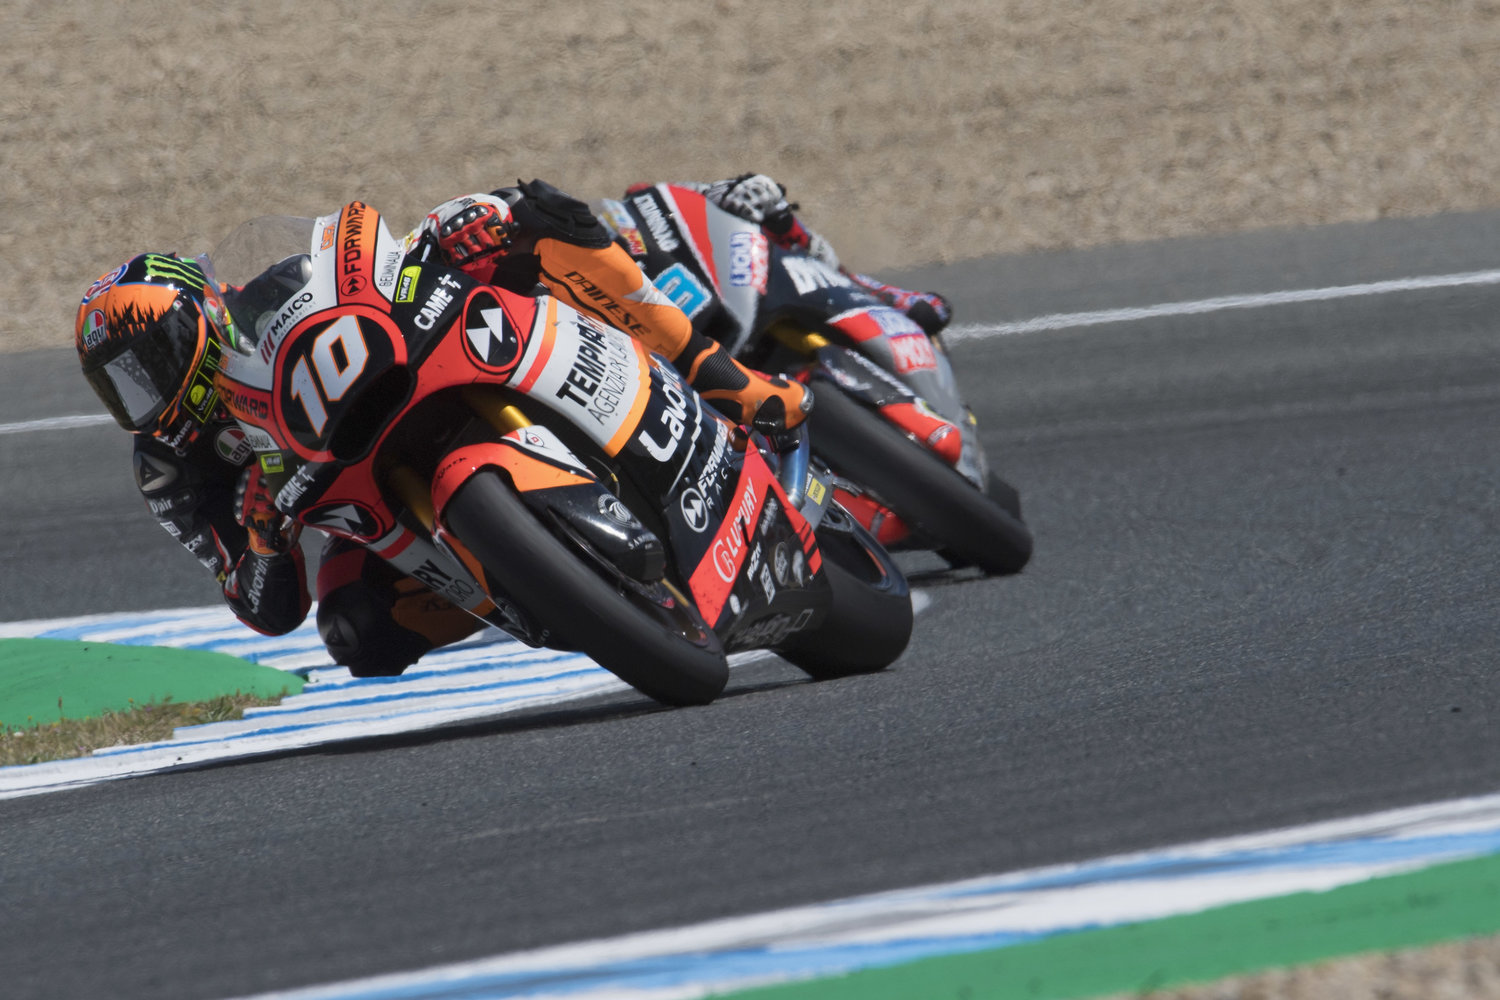 Forward Racing Team duo keen to hit the new French tarmac